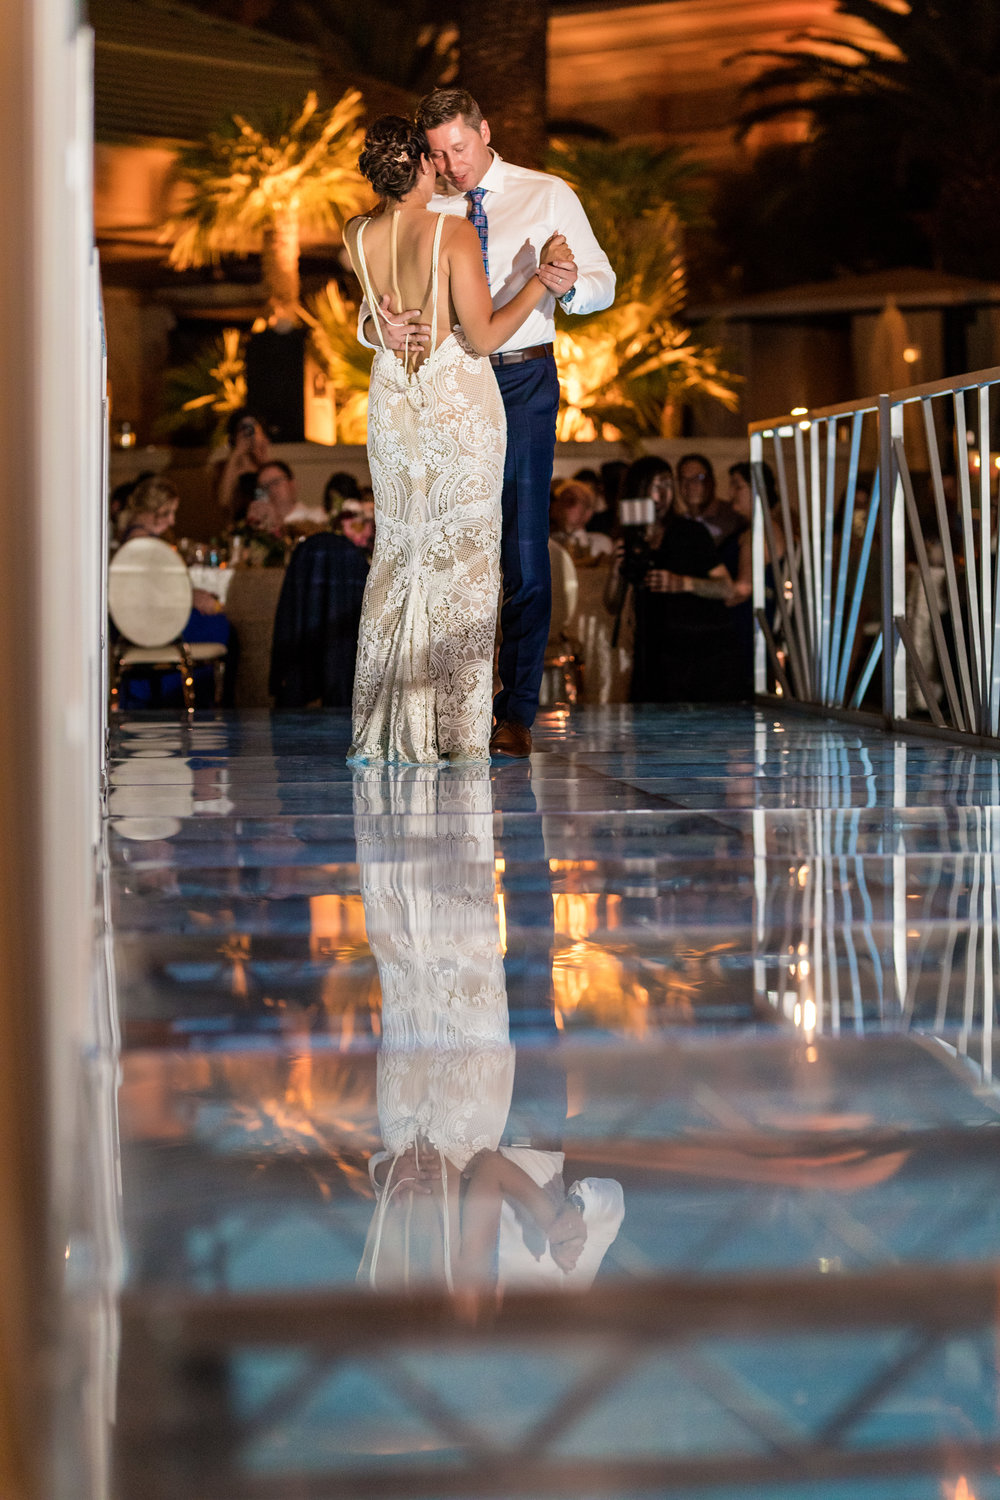 First Dance.  First dance on bridge over pool. Jewel toned wedding centerpieces with gold accents. Wedding Planning by  Andrea Eppolito Events   ·  Photography by  Shandro Photo    ·  Wedding Venue  Four Seasons Las Vegas   ·  Floral and Decor by  Destination by Design   ·  Cake by  Four Seasons Las Vegas   ·  Chandeliers and Lighting by  LED Unplugged   ·  Dress by  Berta   and Menu by Alligator Soup